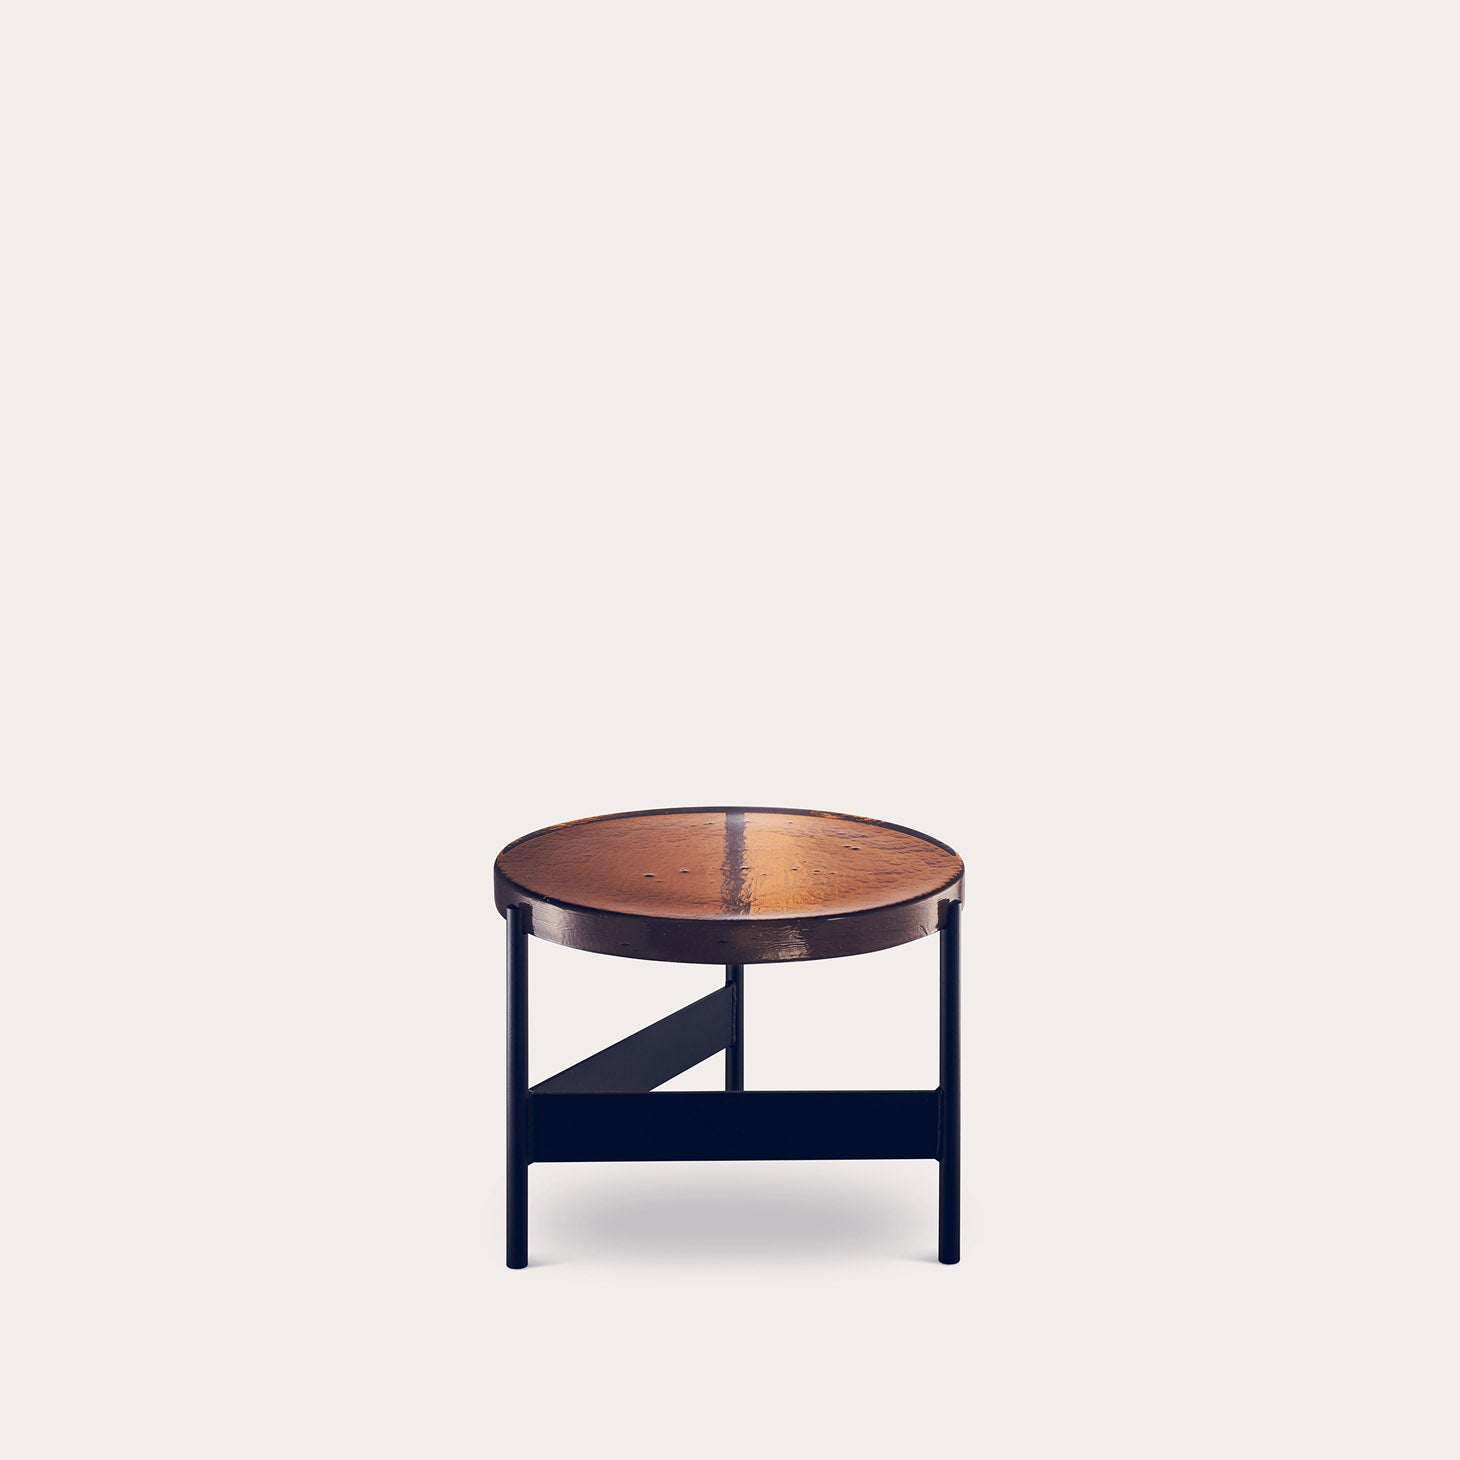 Alwa Two Big Tables Sebastian Herkner Designer Furniture Sku: 747-230-10019